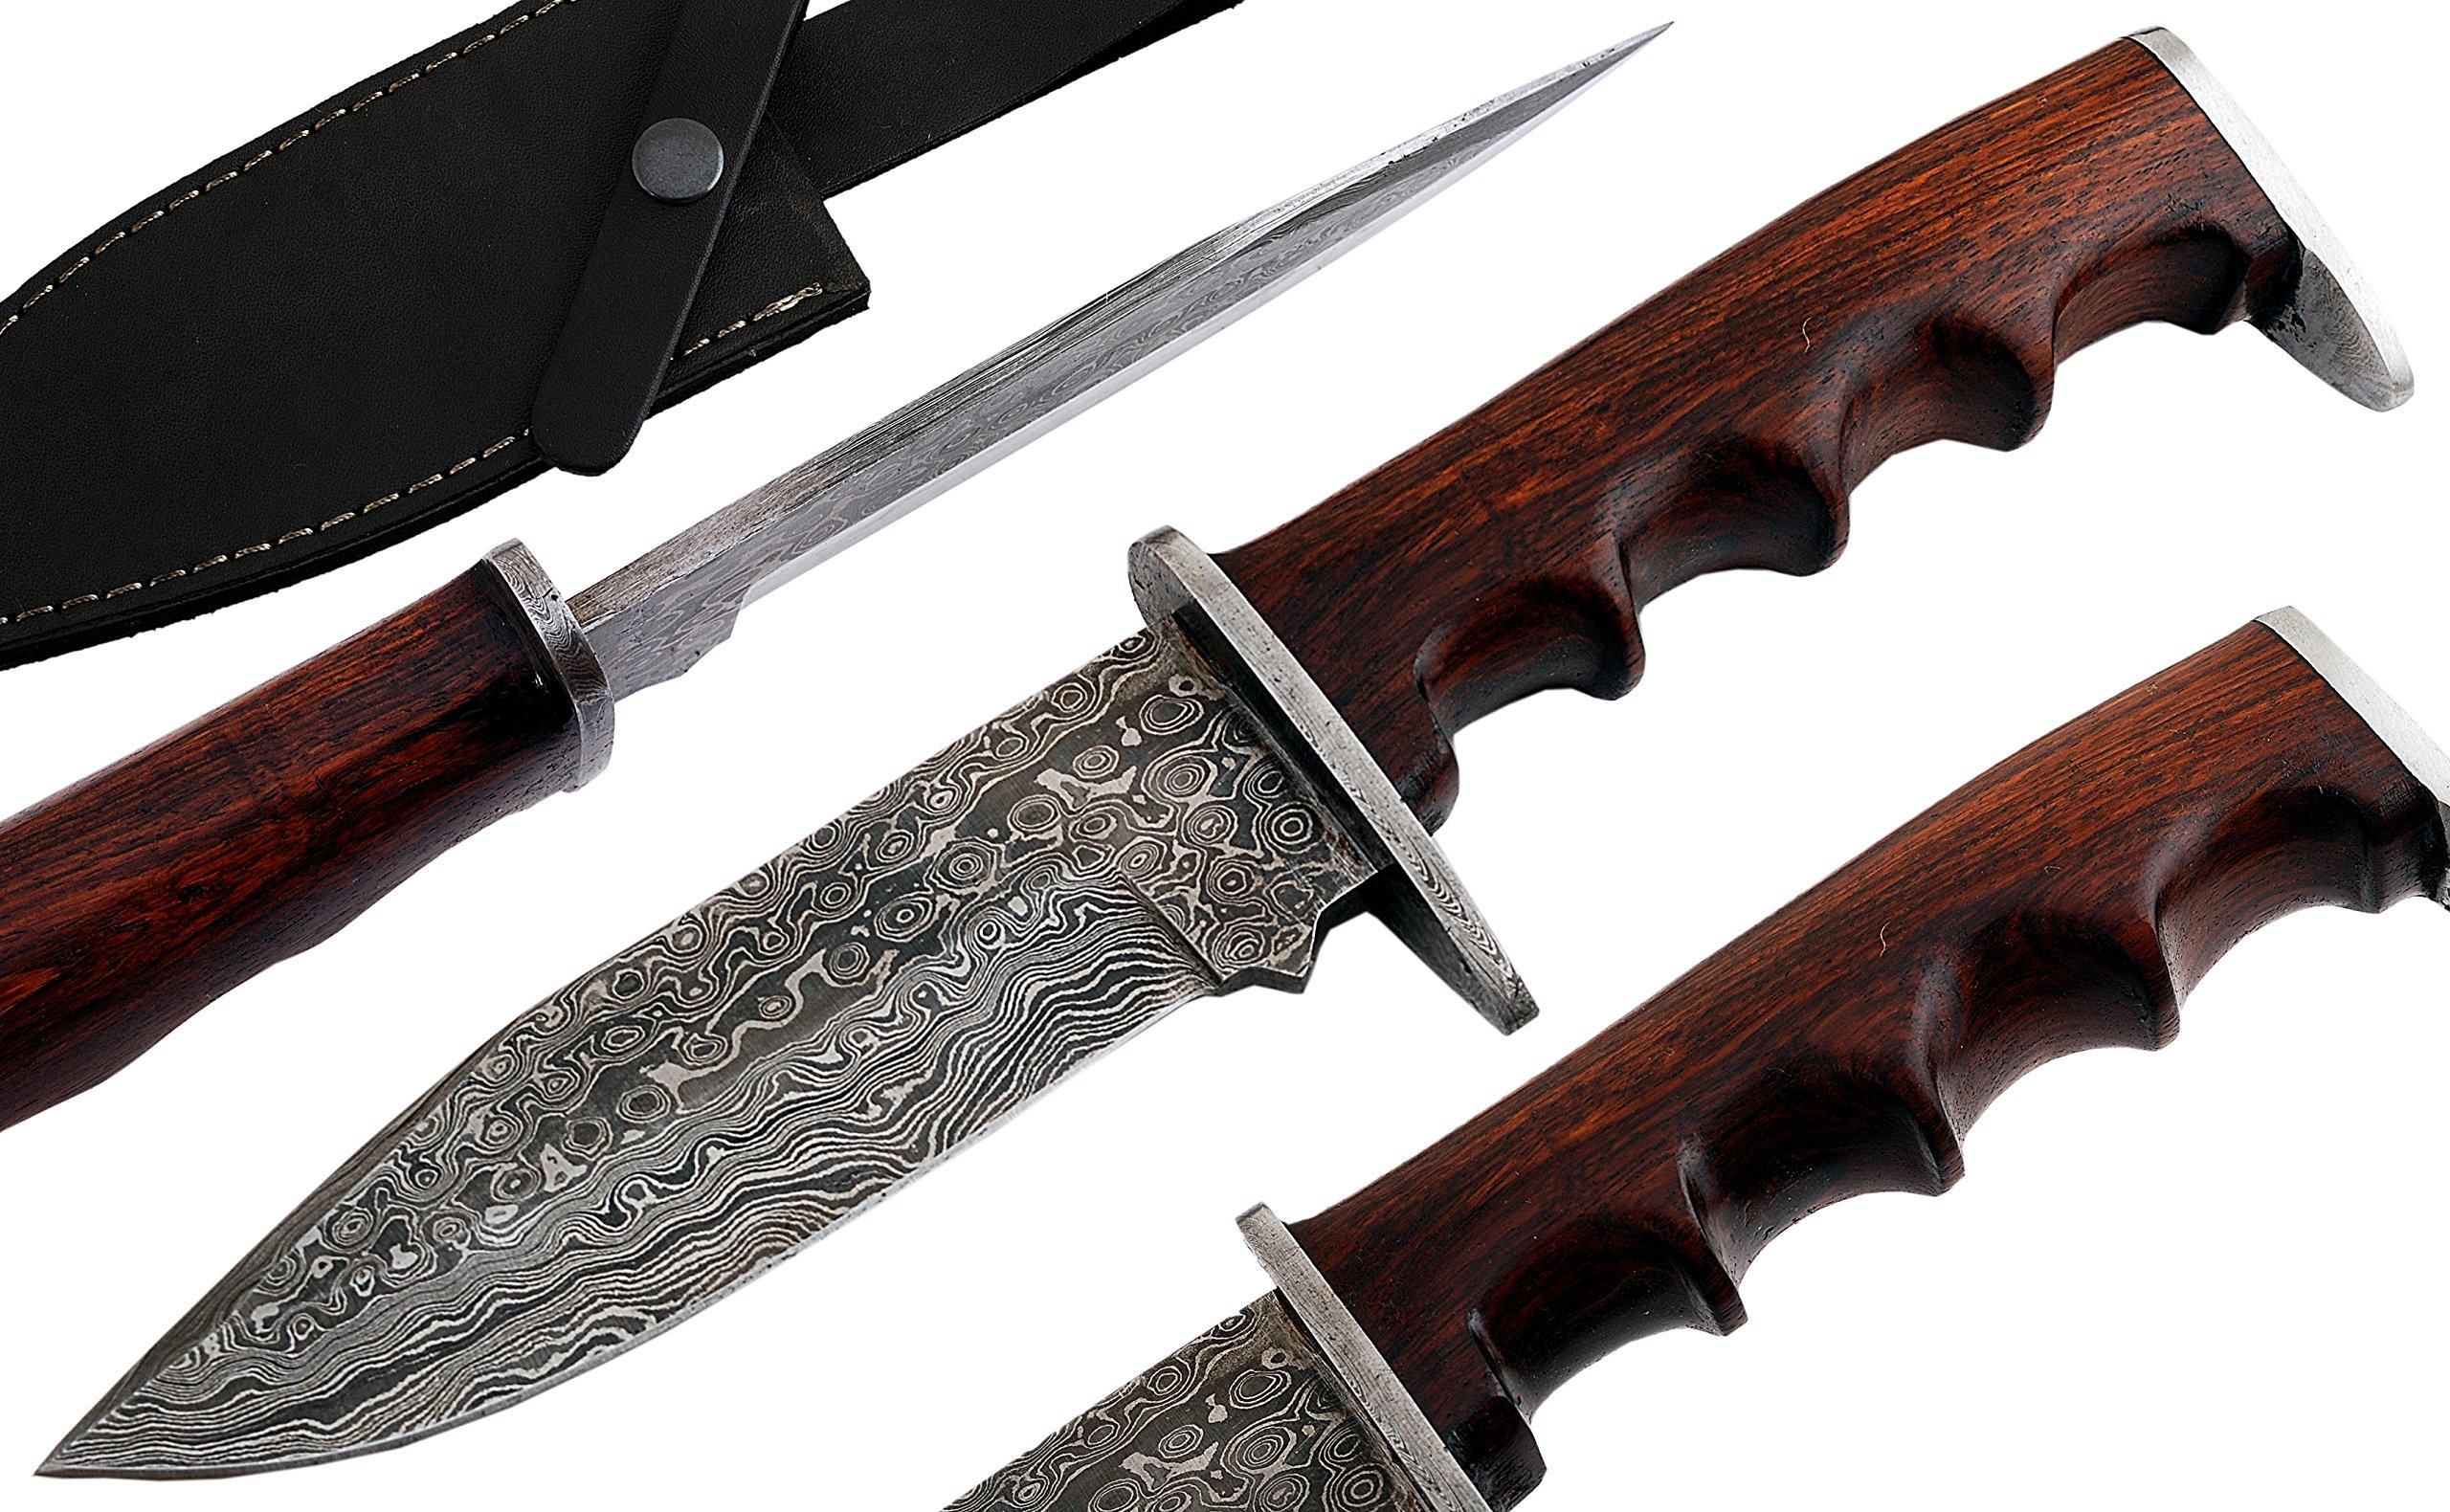 Custom Handmade Damascus Steel Bowie Hunting Knife with leather Sheath - Rose wood defender handle